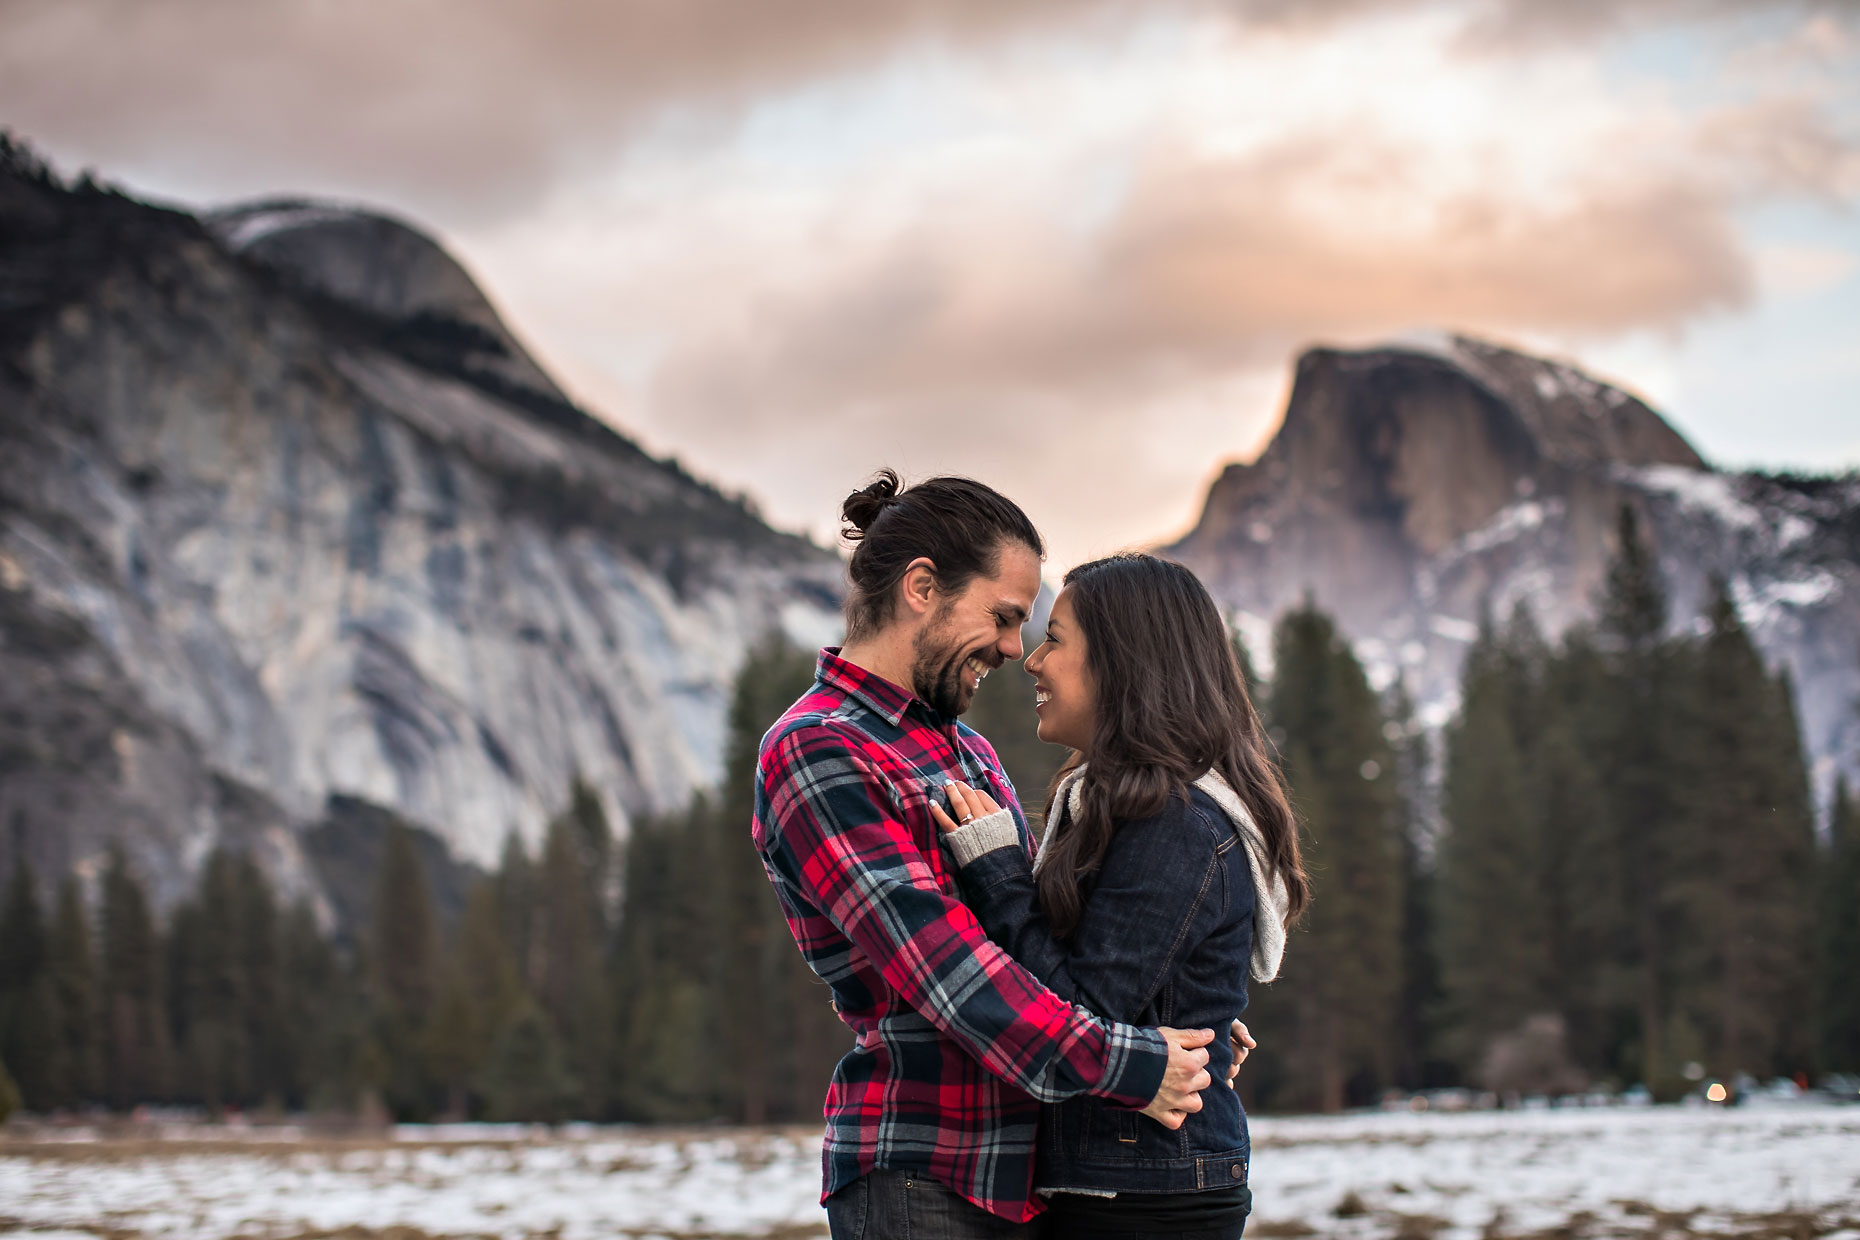 Yosemite adventure session couple photography.